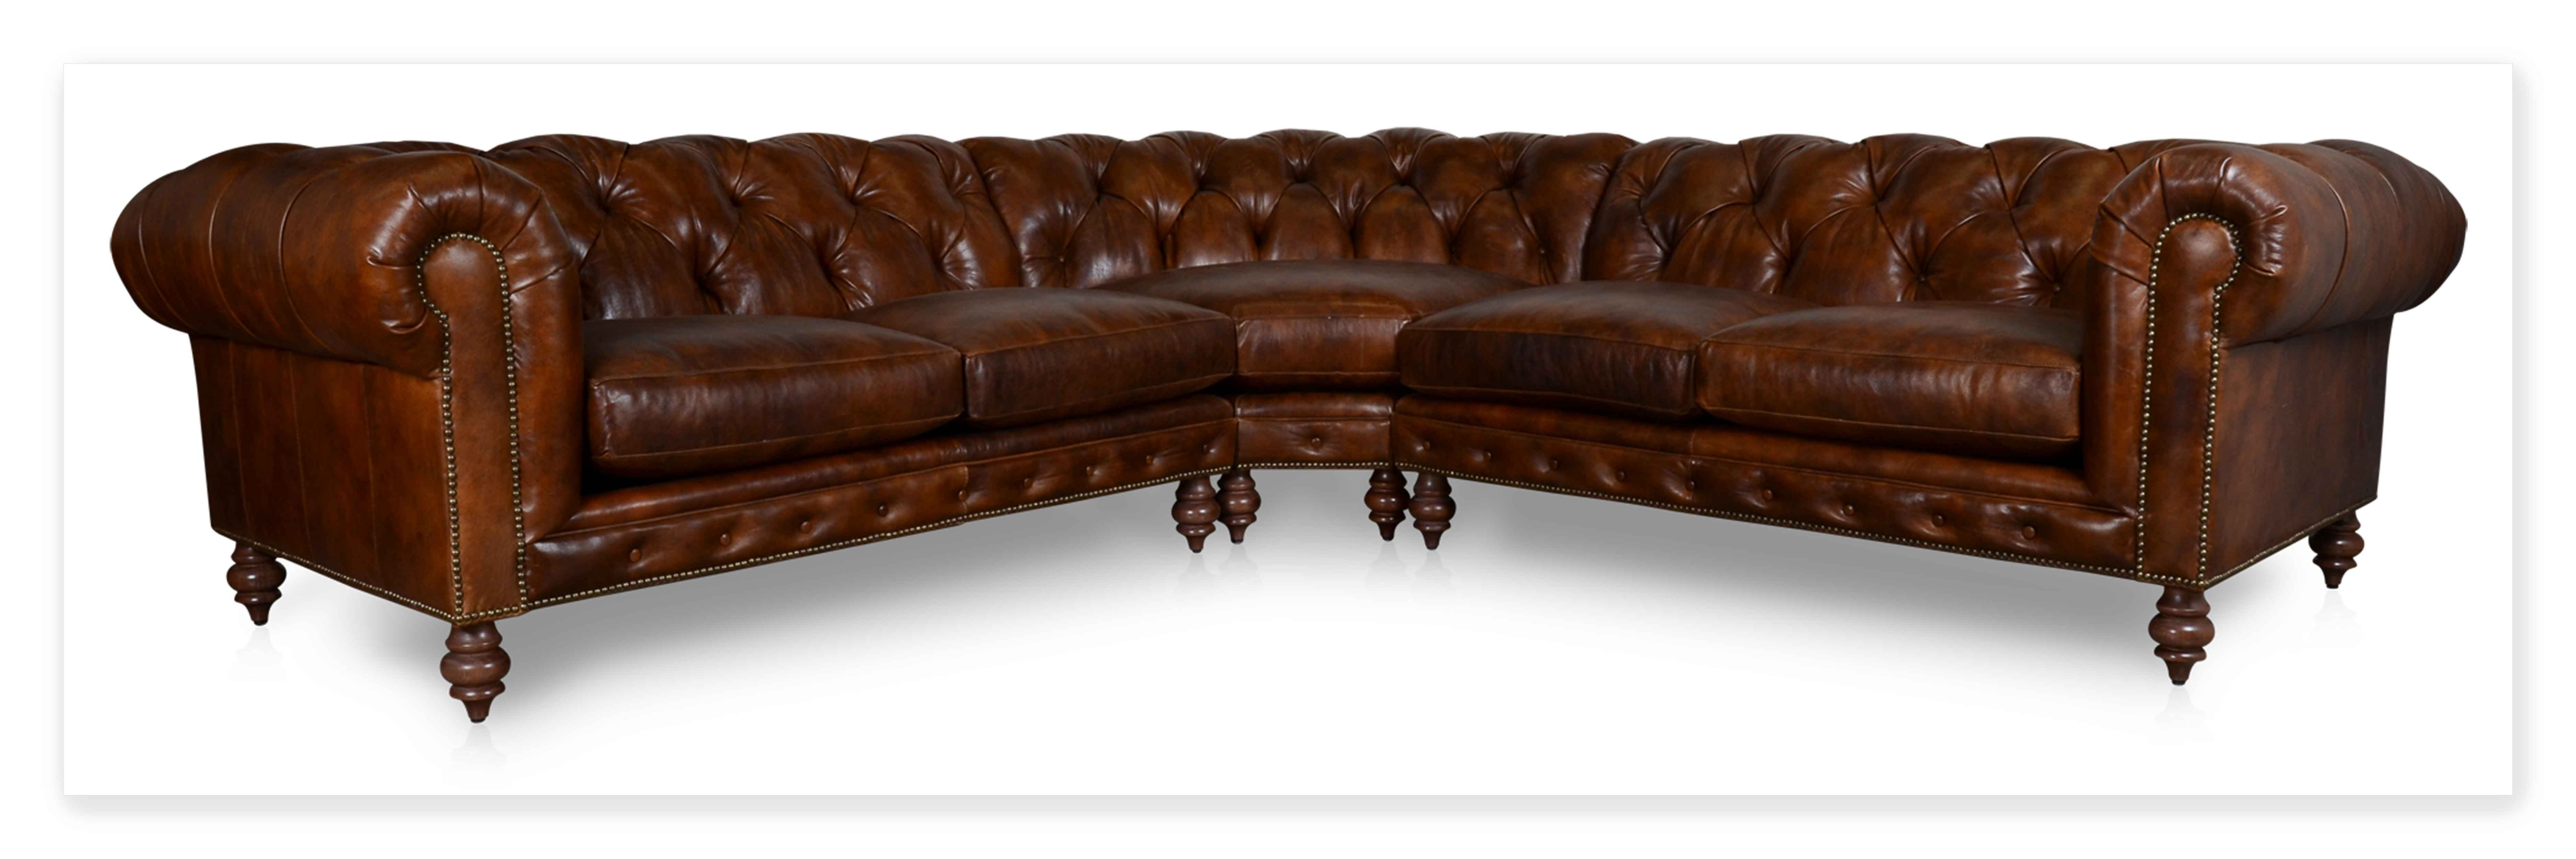 Cococo Custom Chesterfield Leather Tufted Sofas Made In Usa Regarding Chesterfield Furniture (Image 11 of 15)